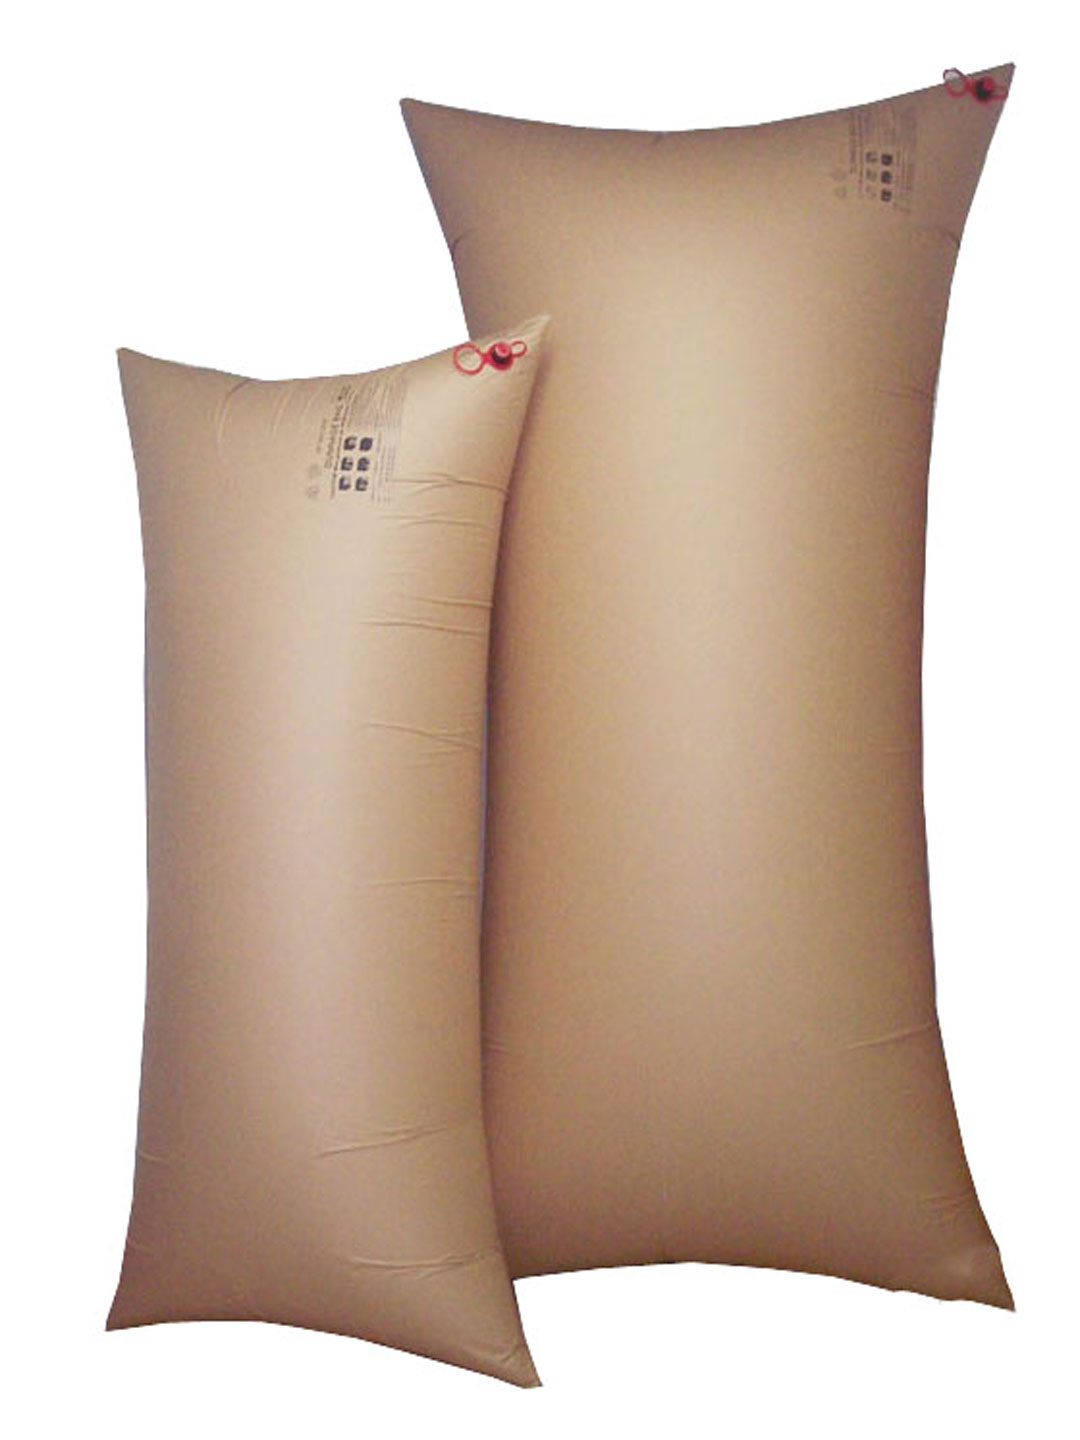 Dunnage Bags | Paper and Woven Dunnage Bags, Dunnage Air Bags, Dunnage Bags, Paper Dunnage Bags, Woven Dunnage Bags, Shipping Air Bags, Inflatable Bags,